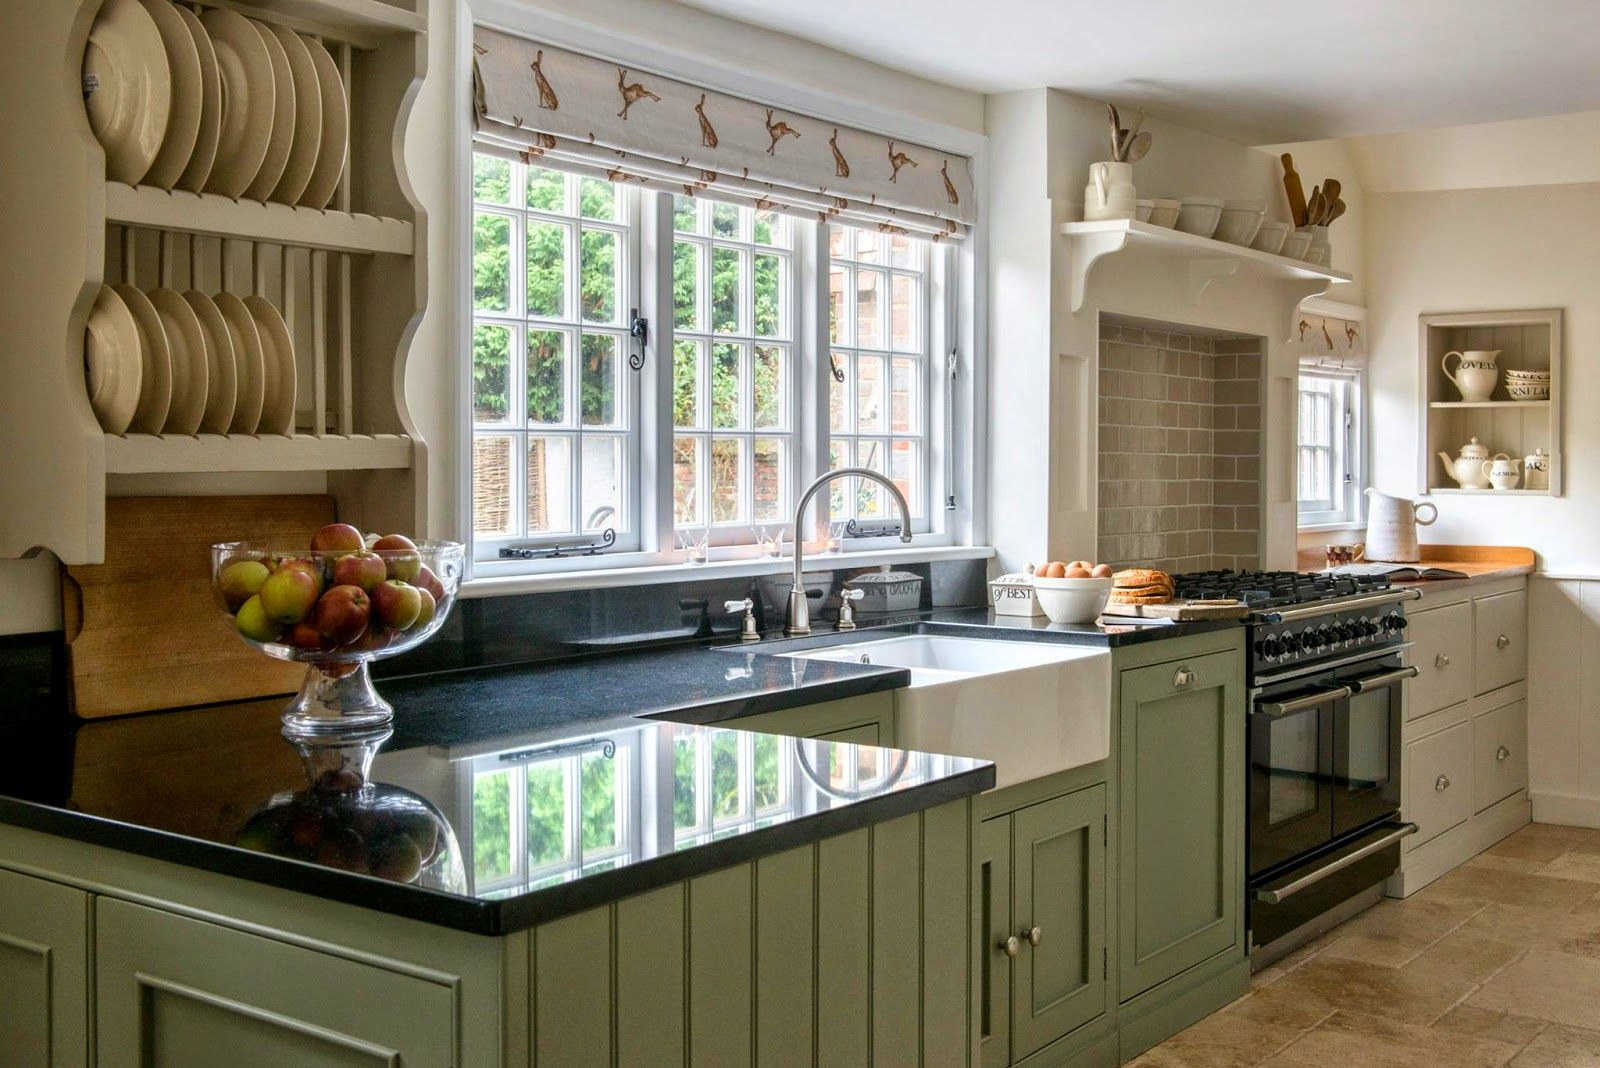 Modern Country Style: Modern Country Kitchen and Colour Scheme Click ...